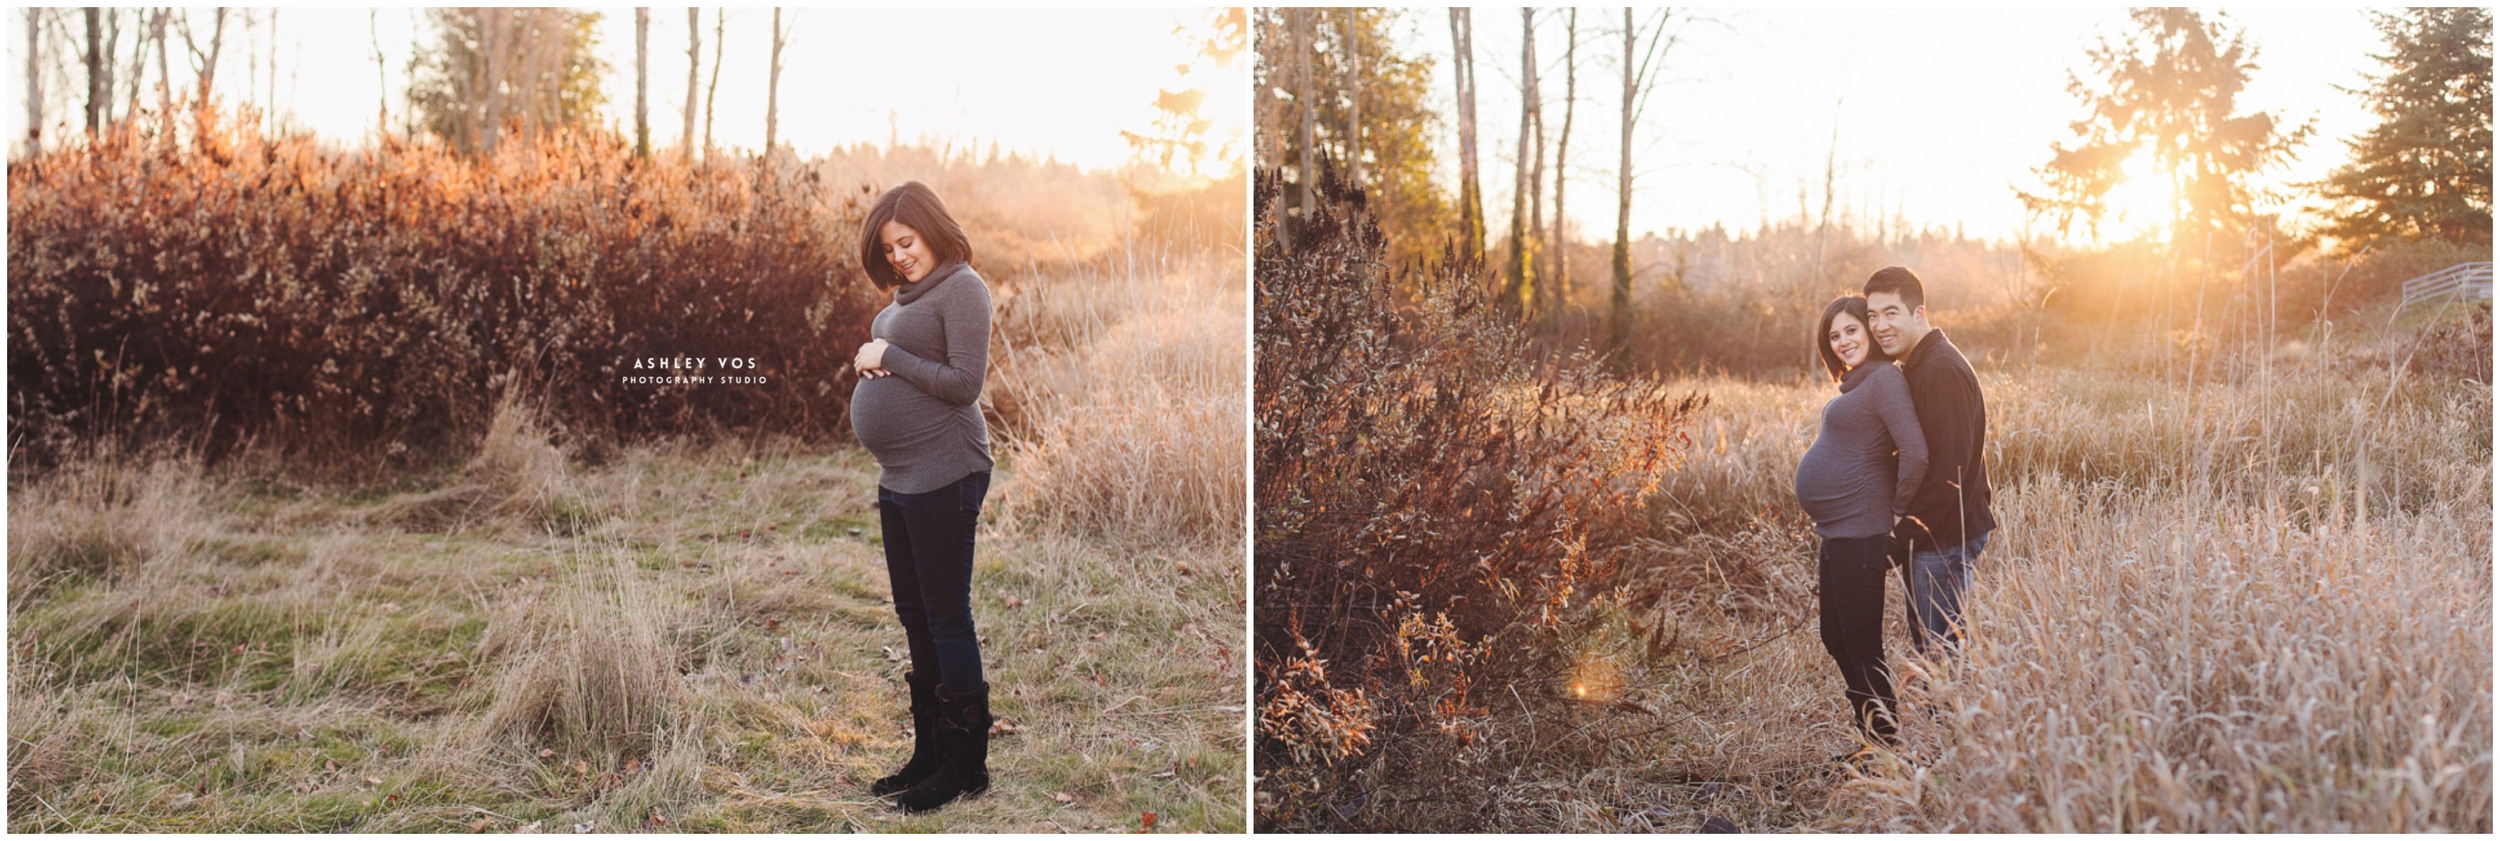 Seattle maternity photography lifestyle_0005.jpg